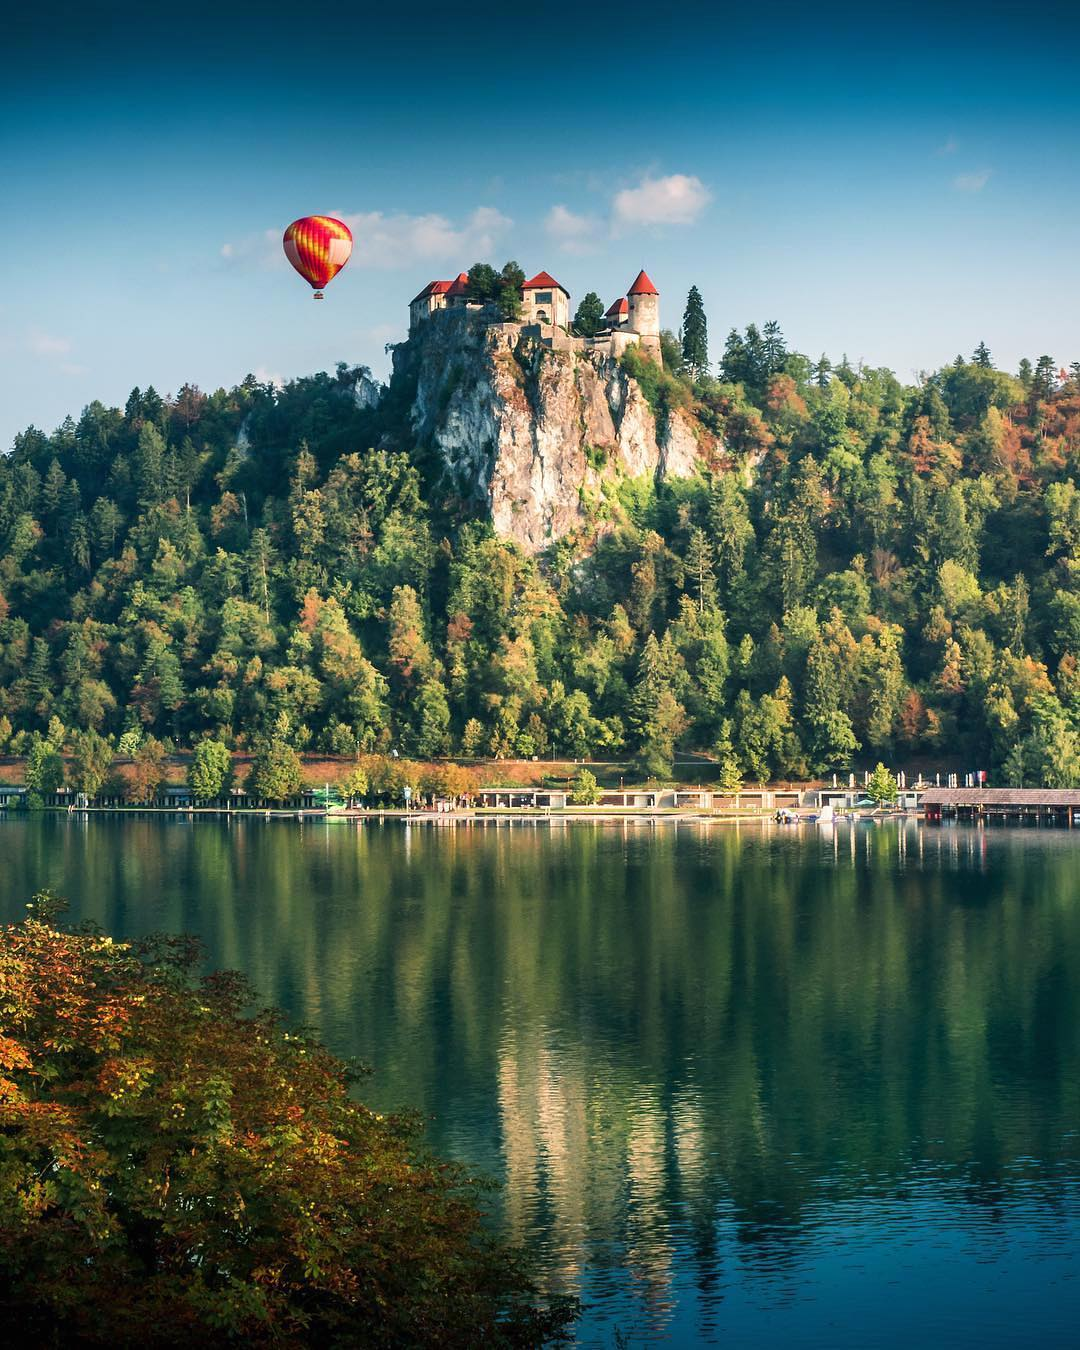 Enchanting, mesmerising, historical.  . Reflections of Bled Castle - according to written sources, the oldest castle in Slovenia.  Perched atop a steep cliff, rising 130 metres above the glacial Lake Bled.  Who would you take with you to this magical place?  Thanks @maxlazzi for this beautiful capture of yours.